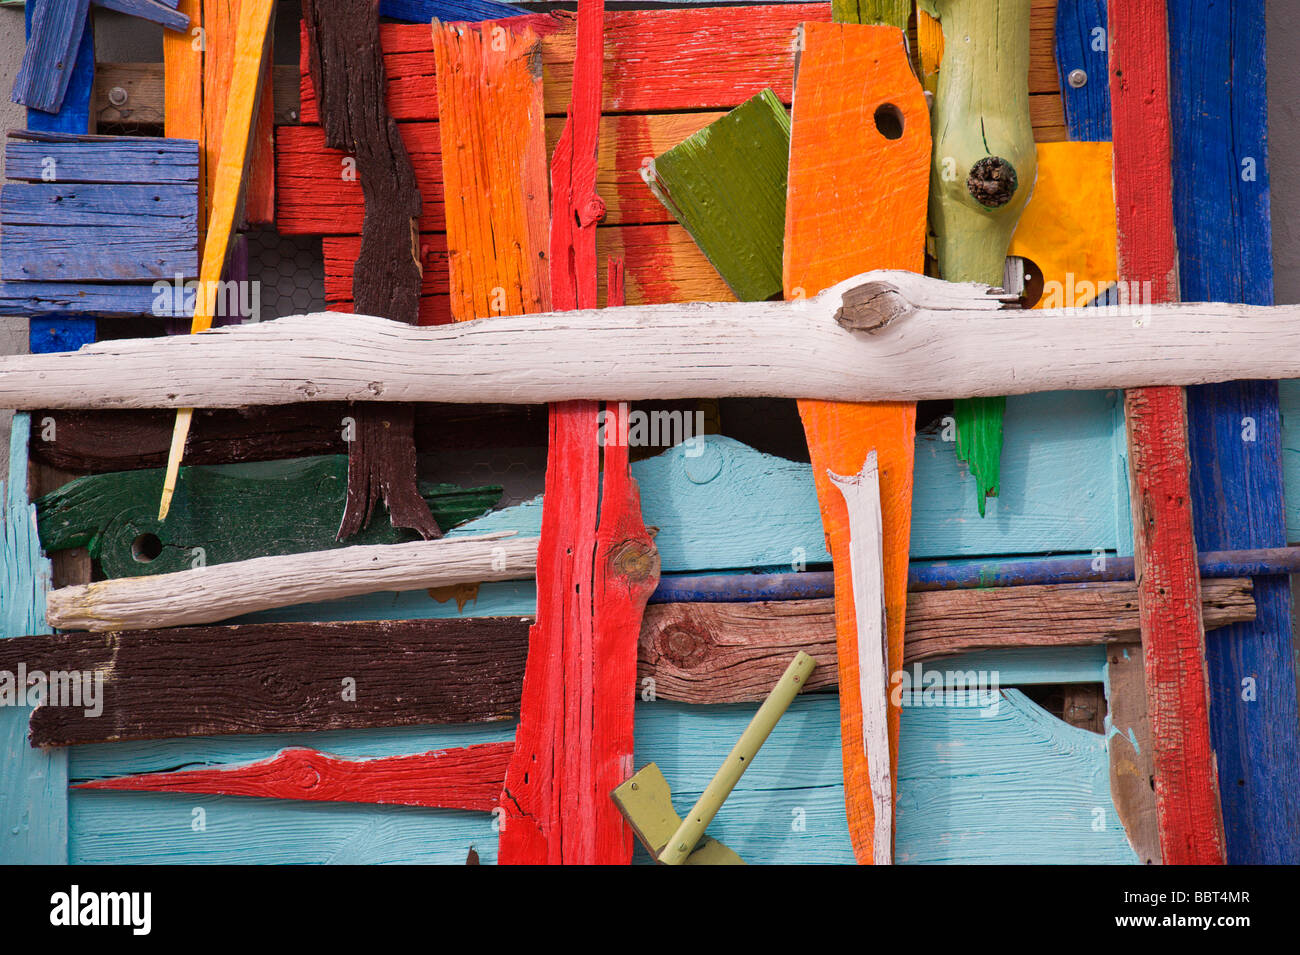 Colorful three dimensional art on an outside wall, in Carrizozo, New Mexico. - Stock Image